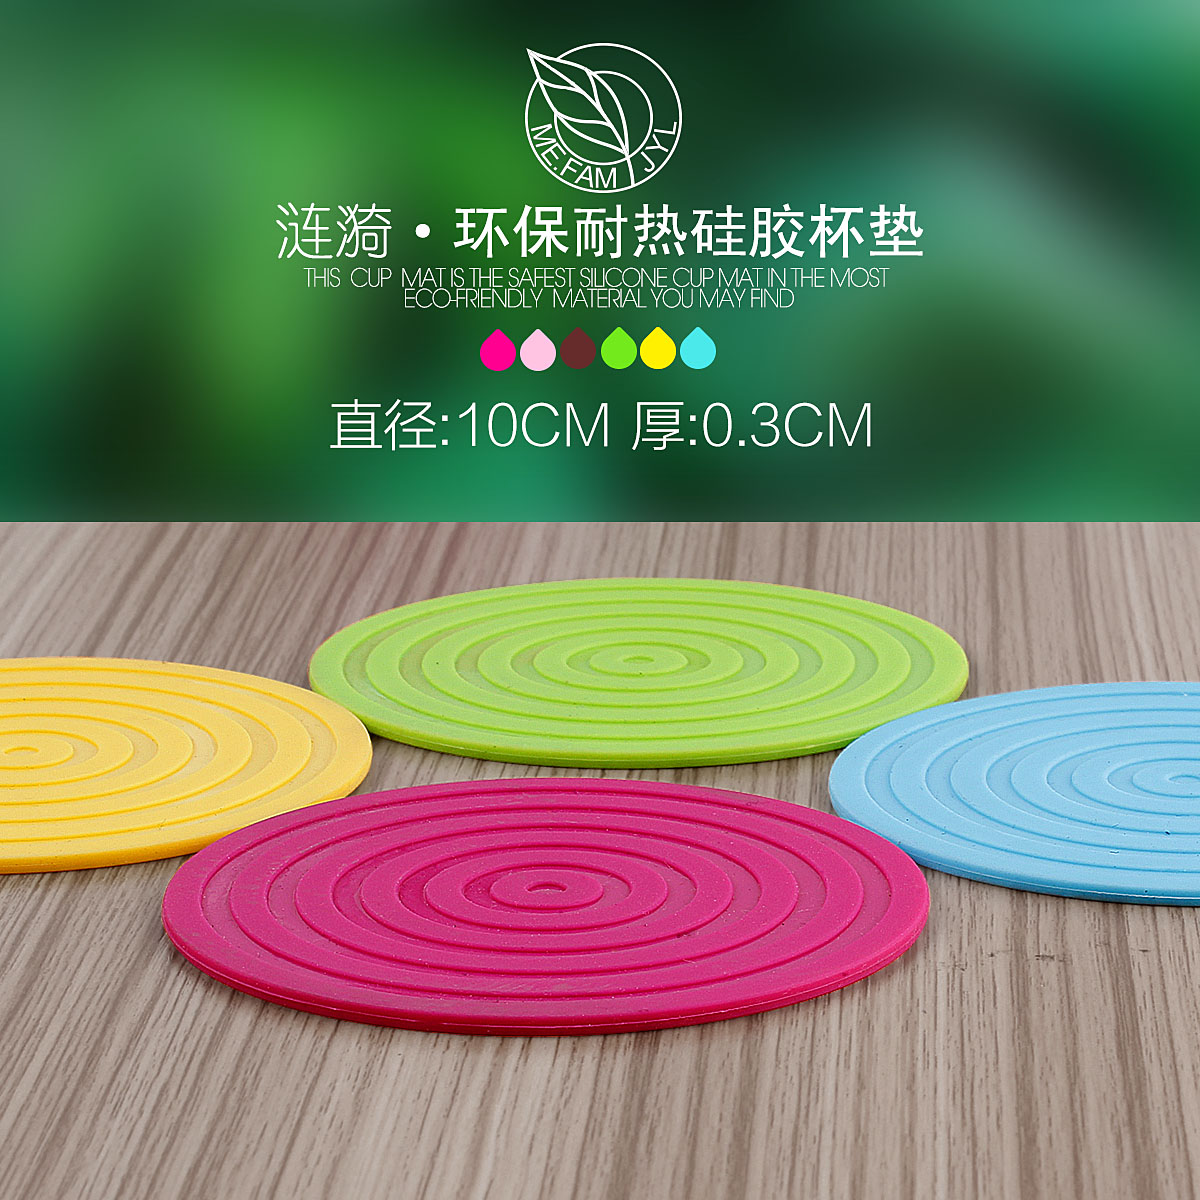 M vatican watercups protection desktop circular silicone coasters heat pad heat ripples slip insulation pad creative coaster